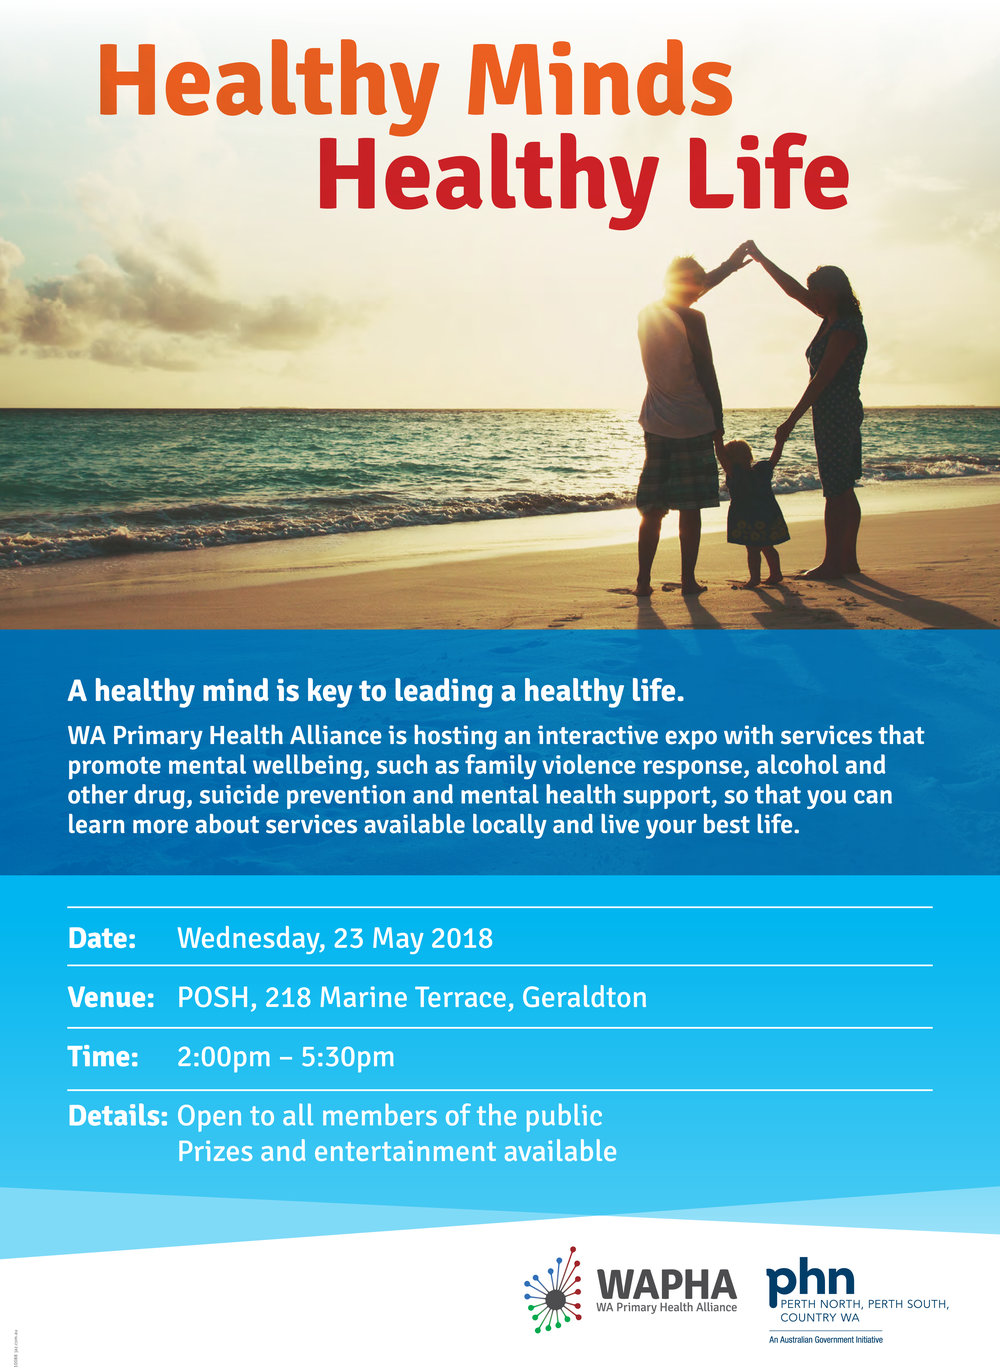 17967424_Healthy Minds Healthy Life Community Expo flyer.jpg